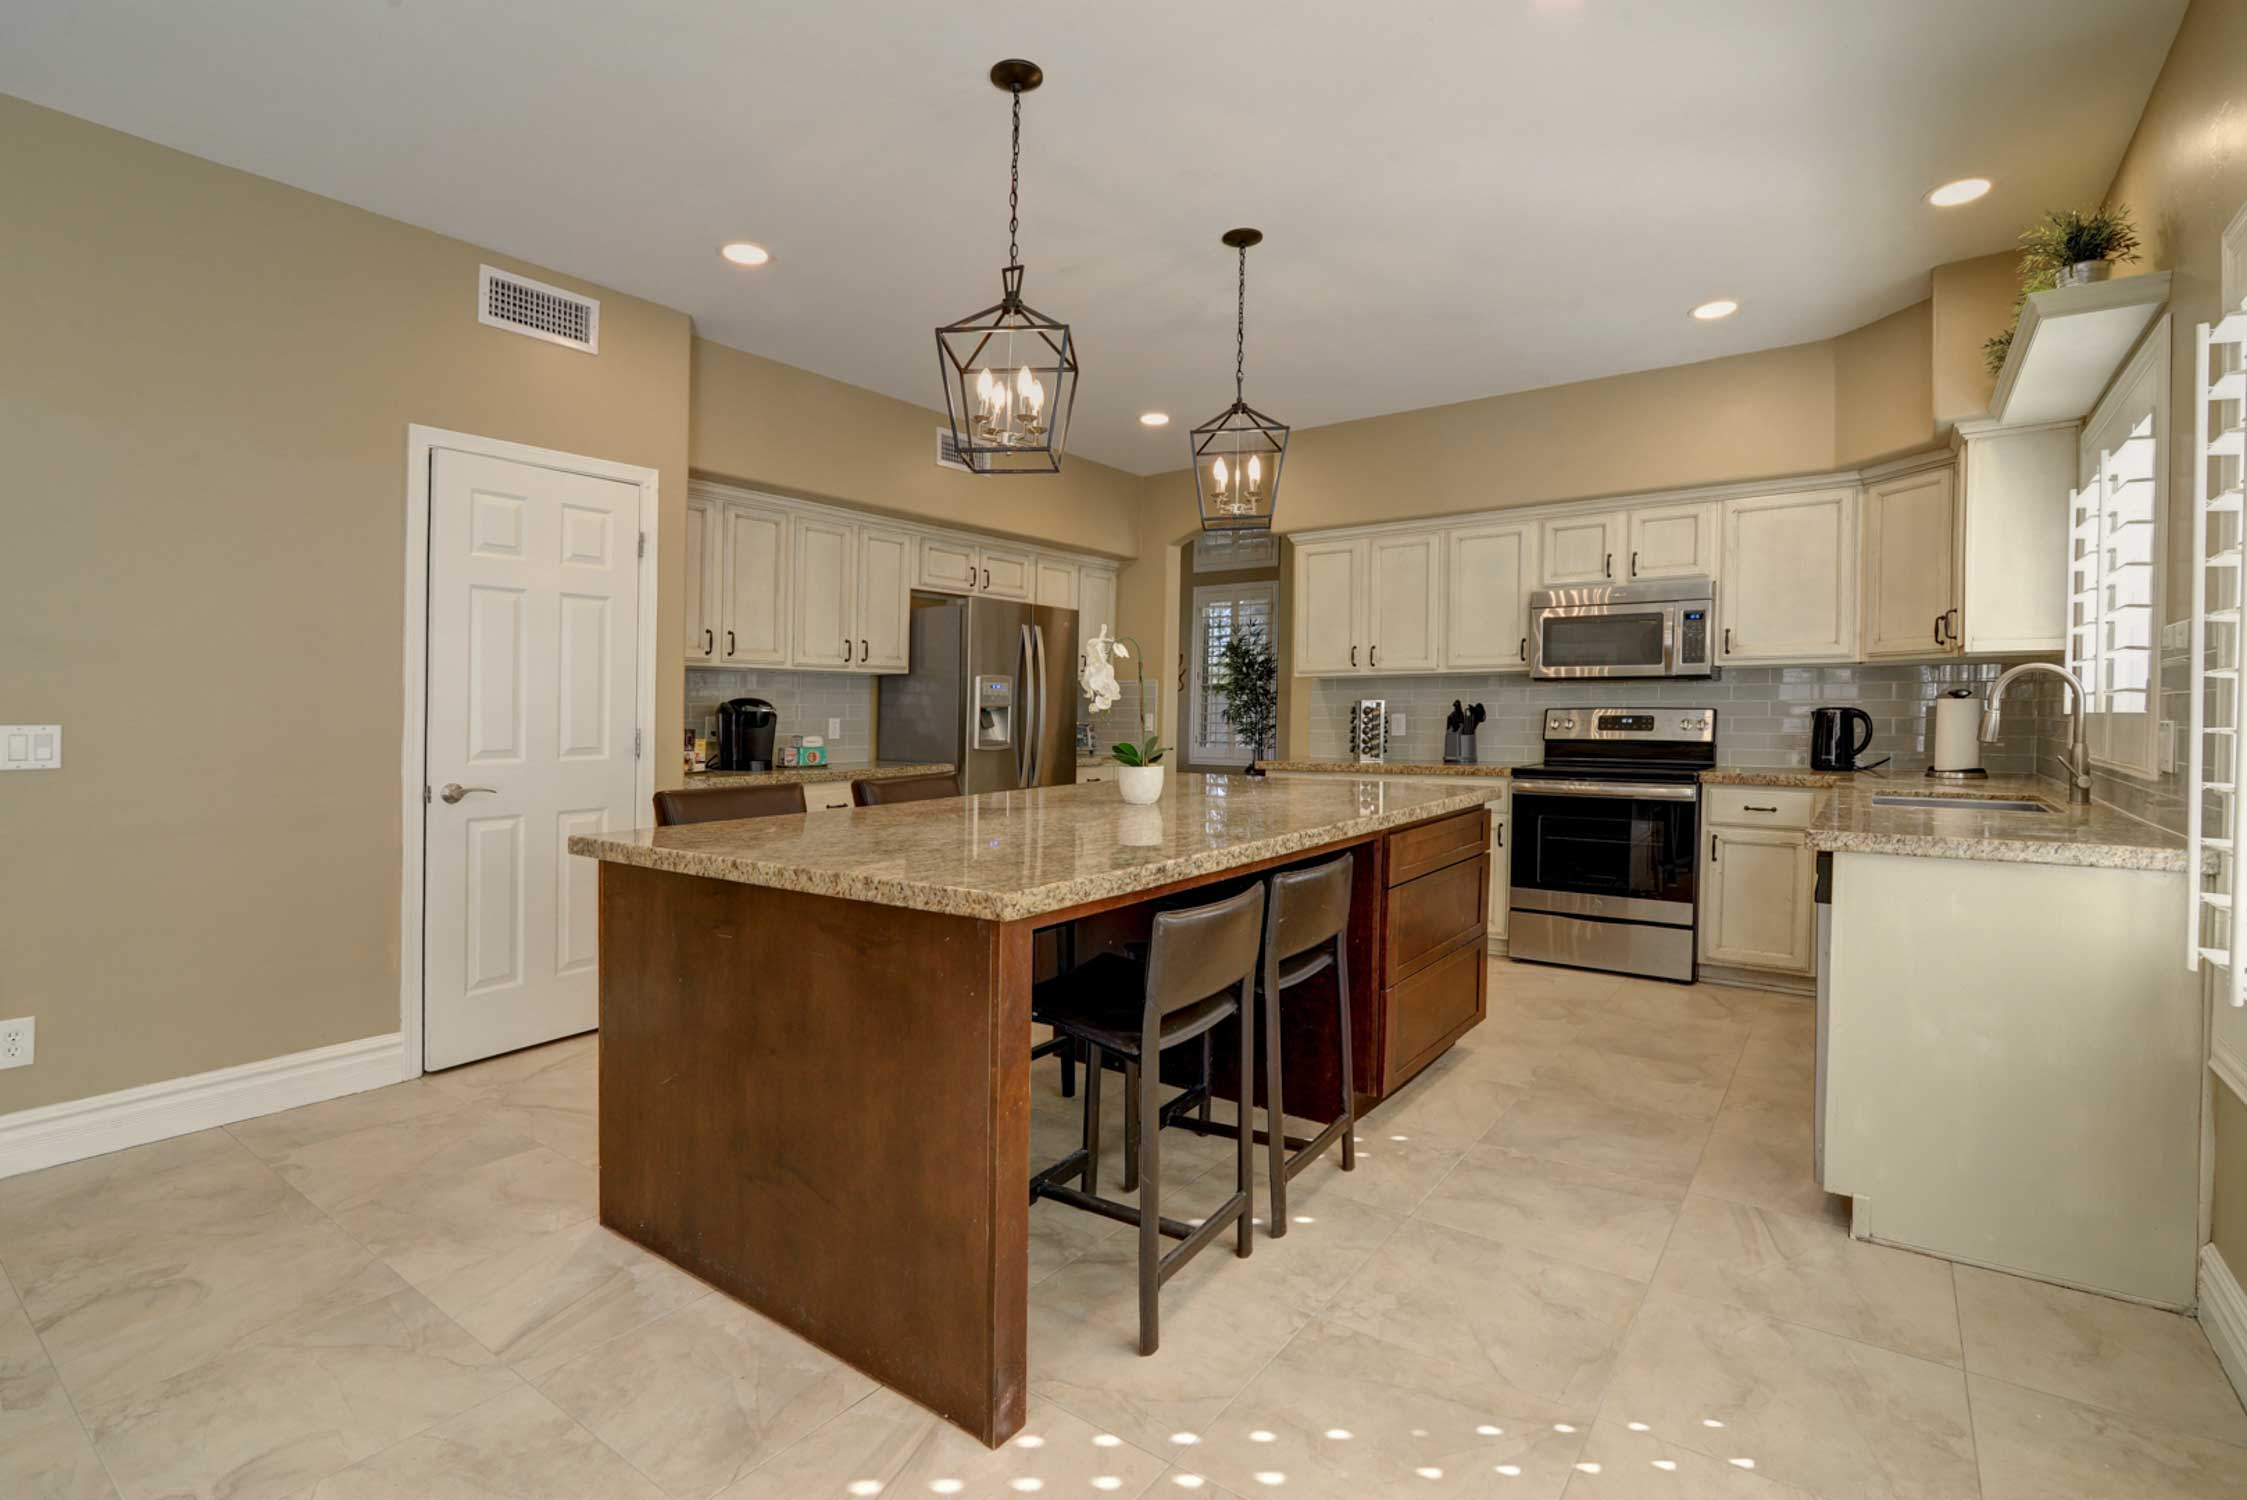 The fully equipped gourmet kitchen has everything you need!